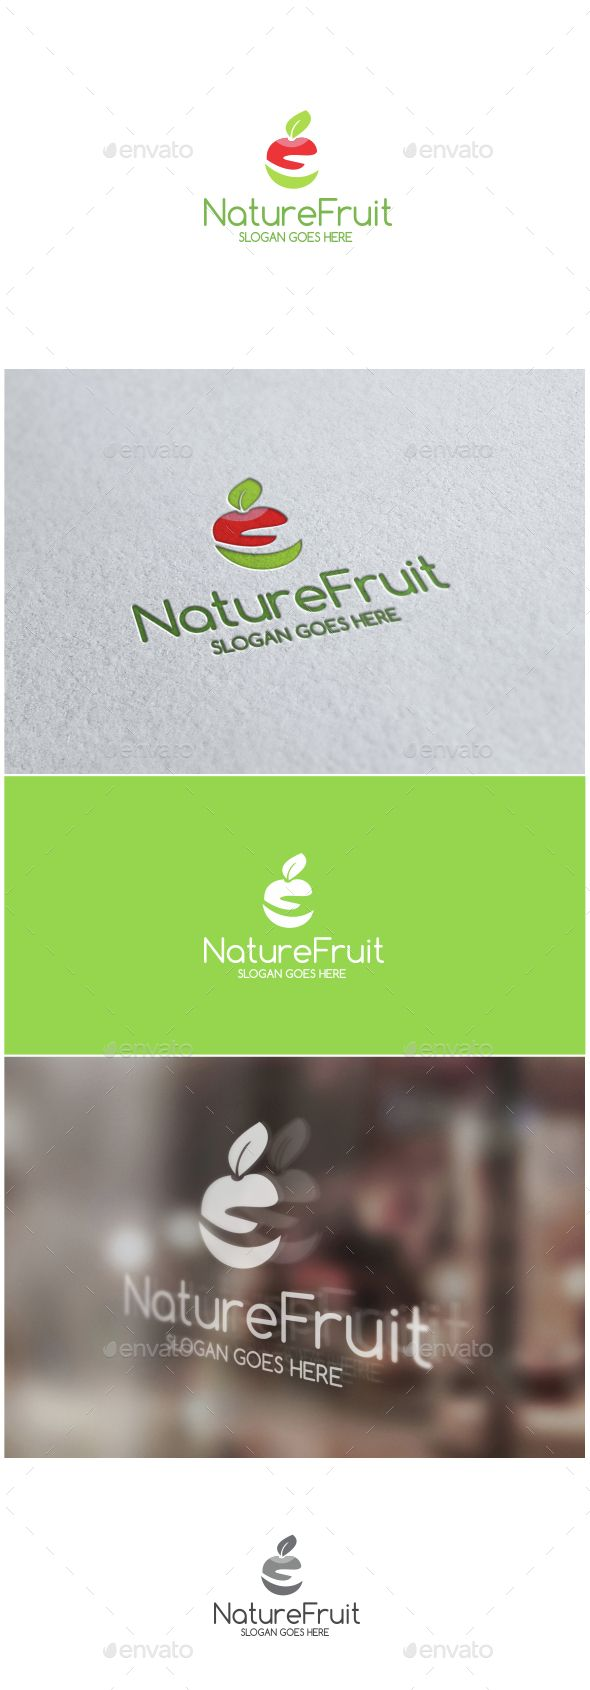 Nature Fruit Logo http://graphicriver.net/user/ms_designer/portfolio?ref=MS_designer